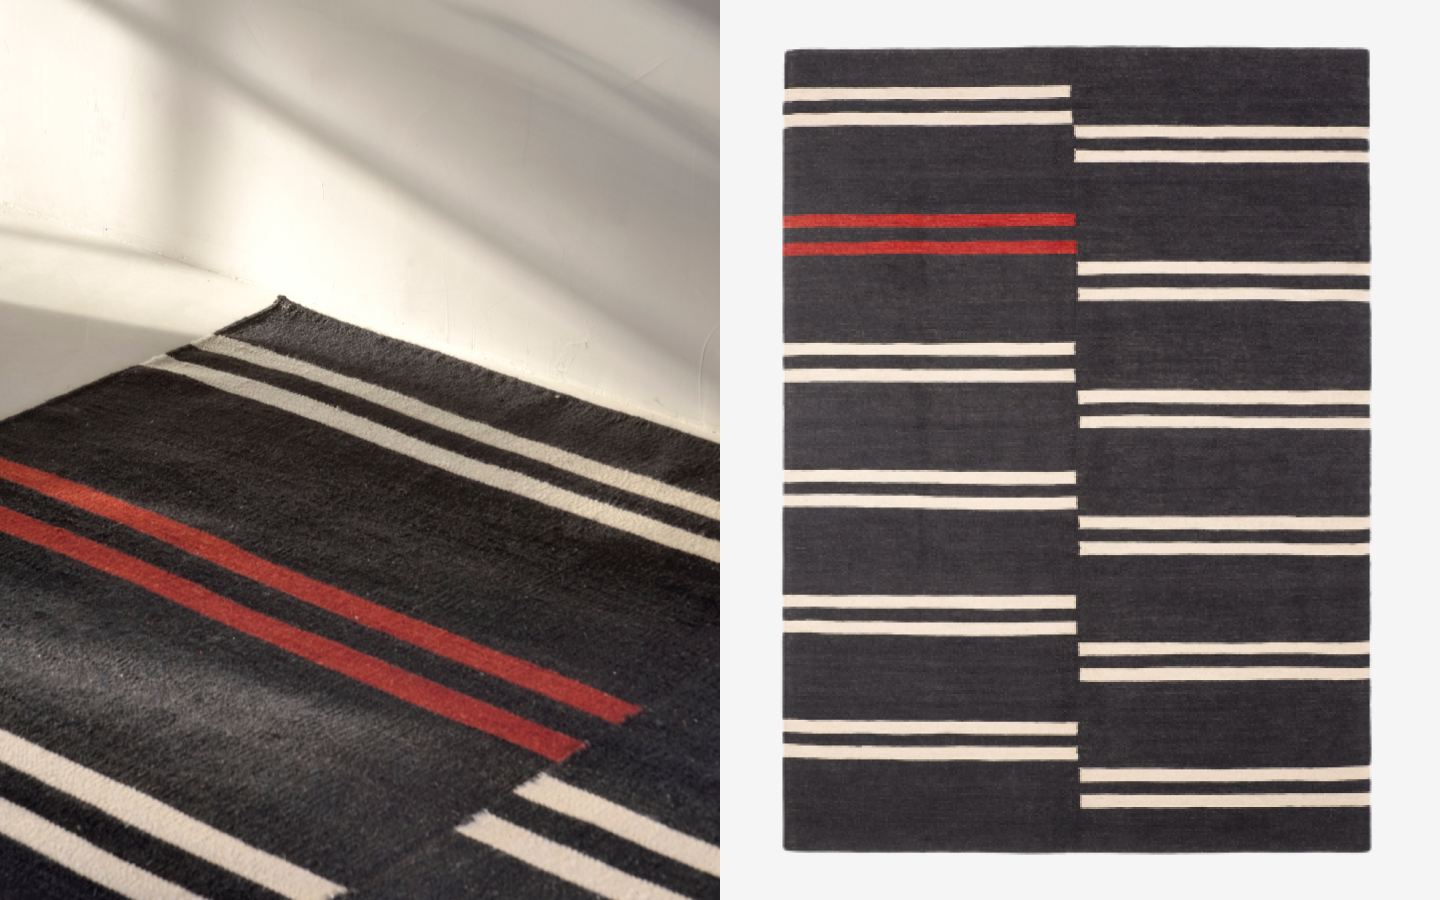 Blue kilim rug with red and white stripes